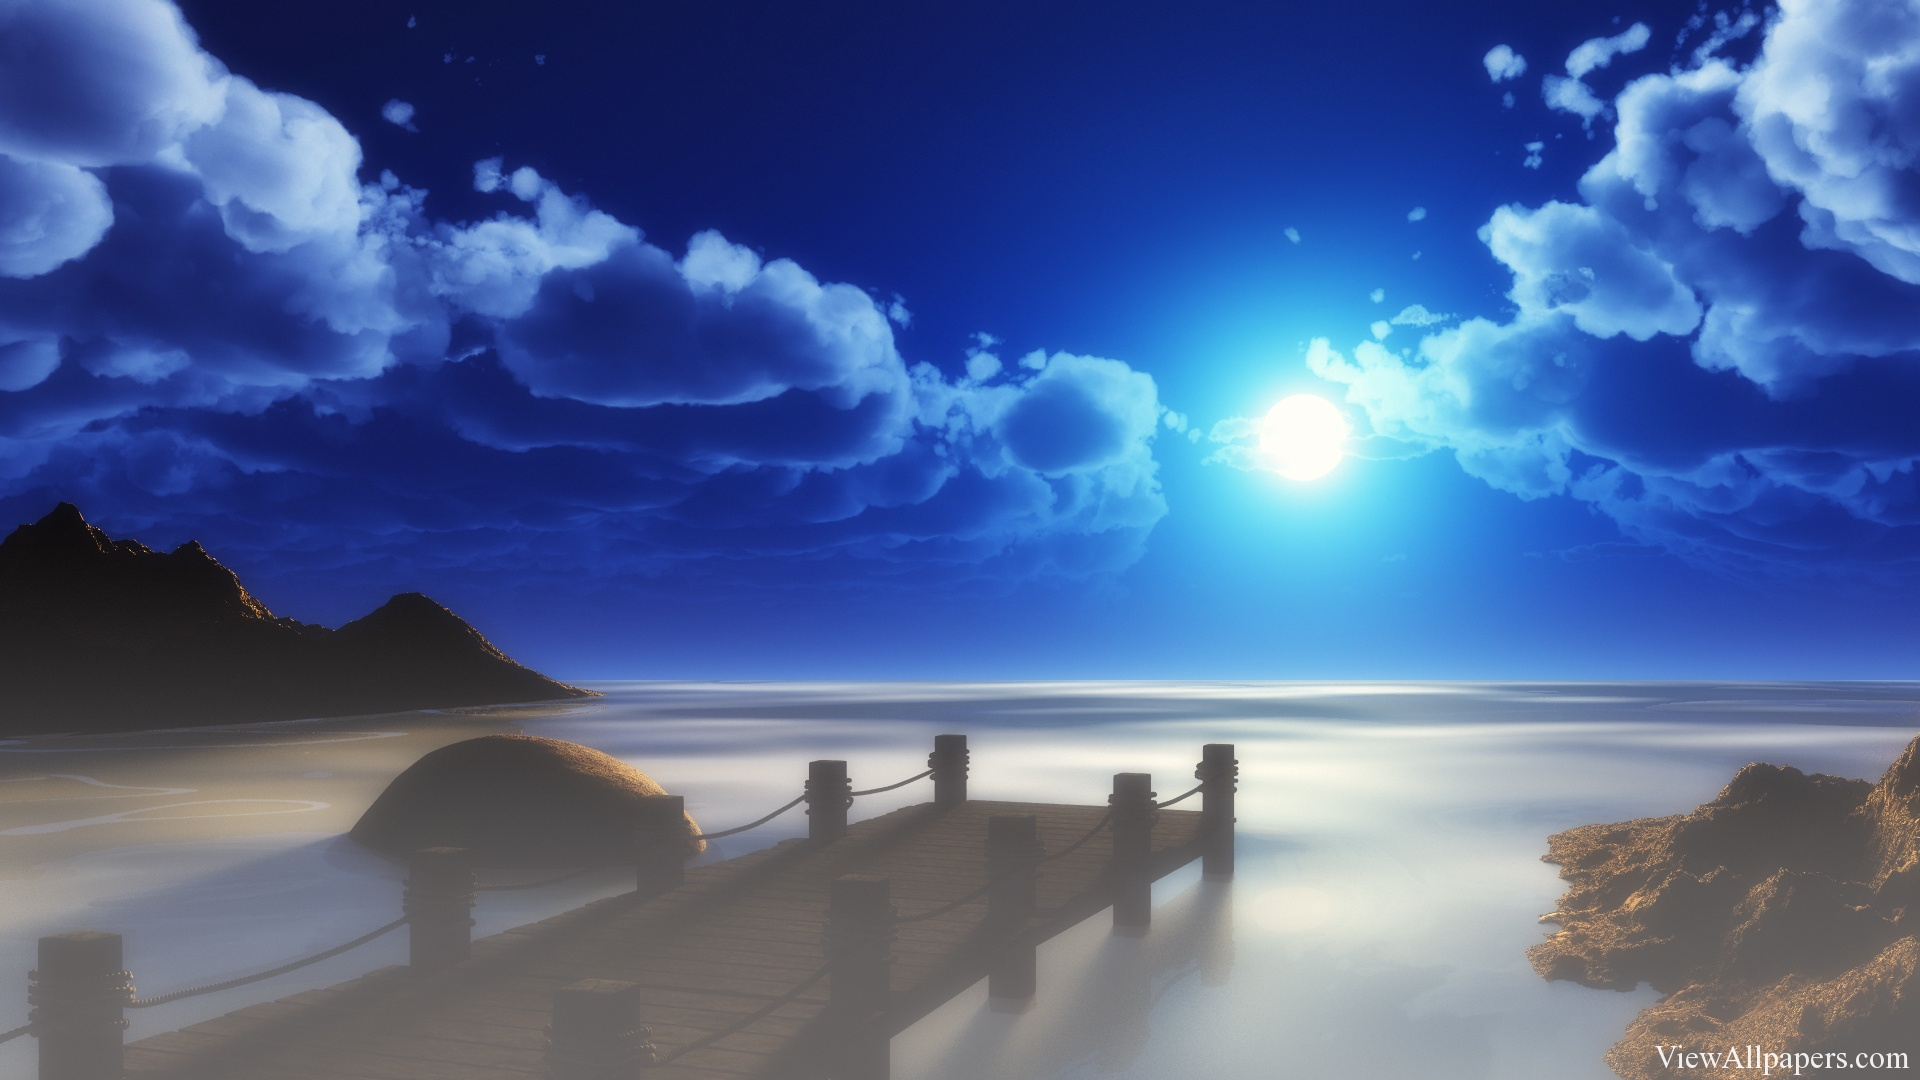 Beach At Night With Moon Beaches HD Wallpapers 1920x1080